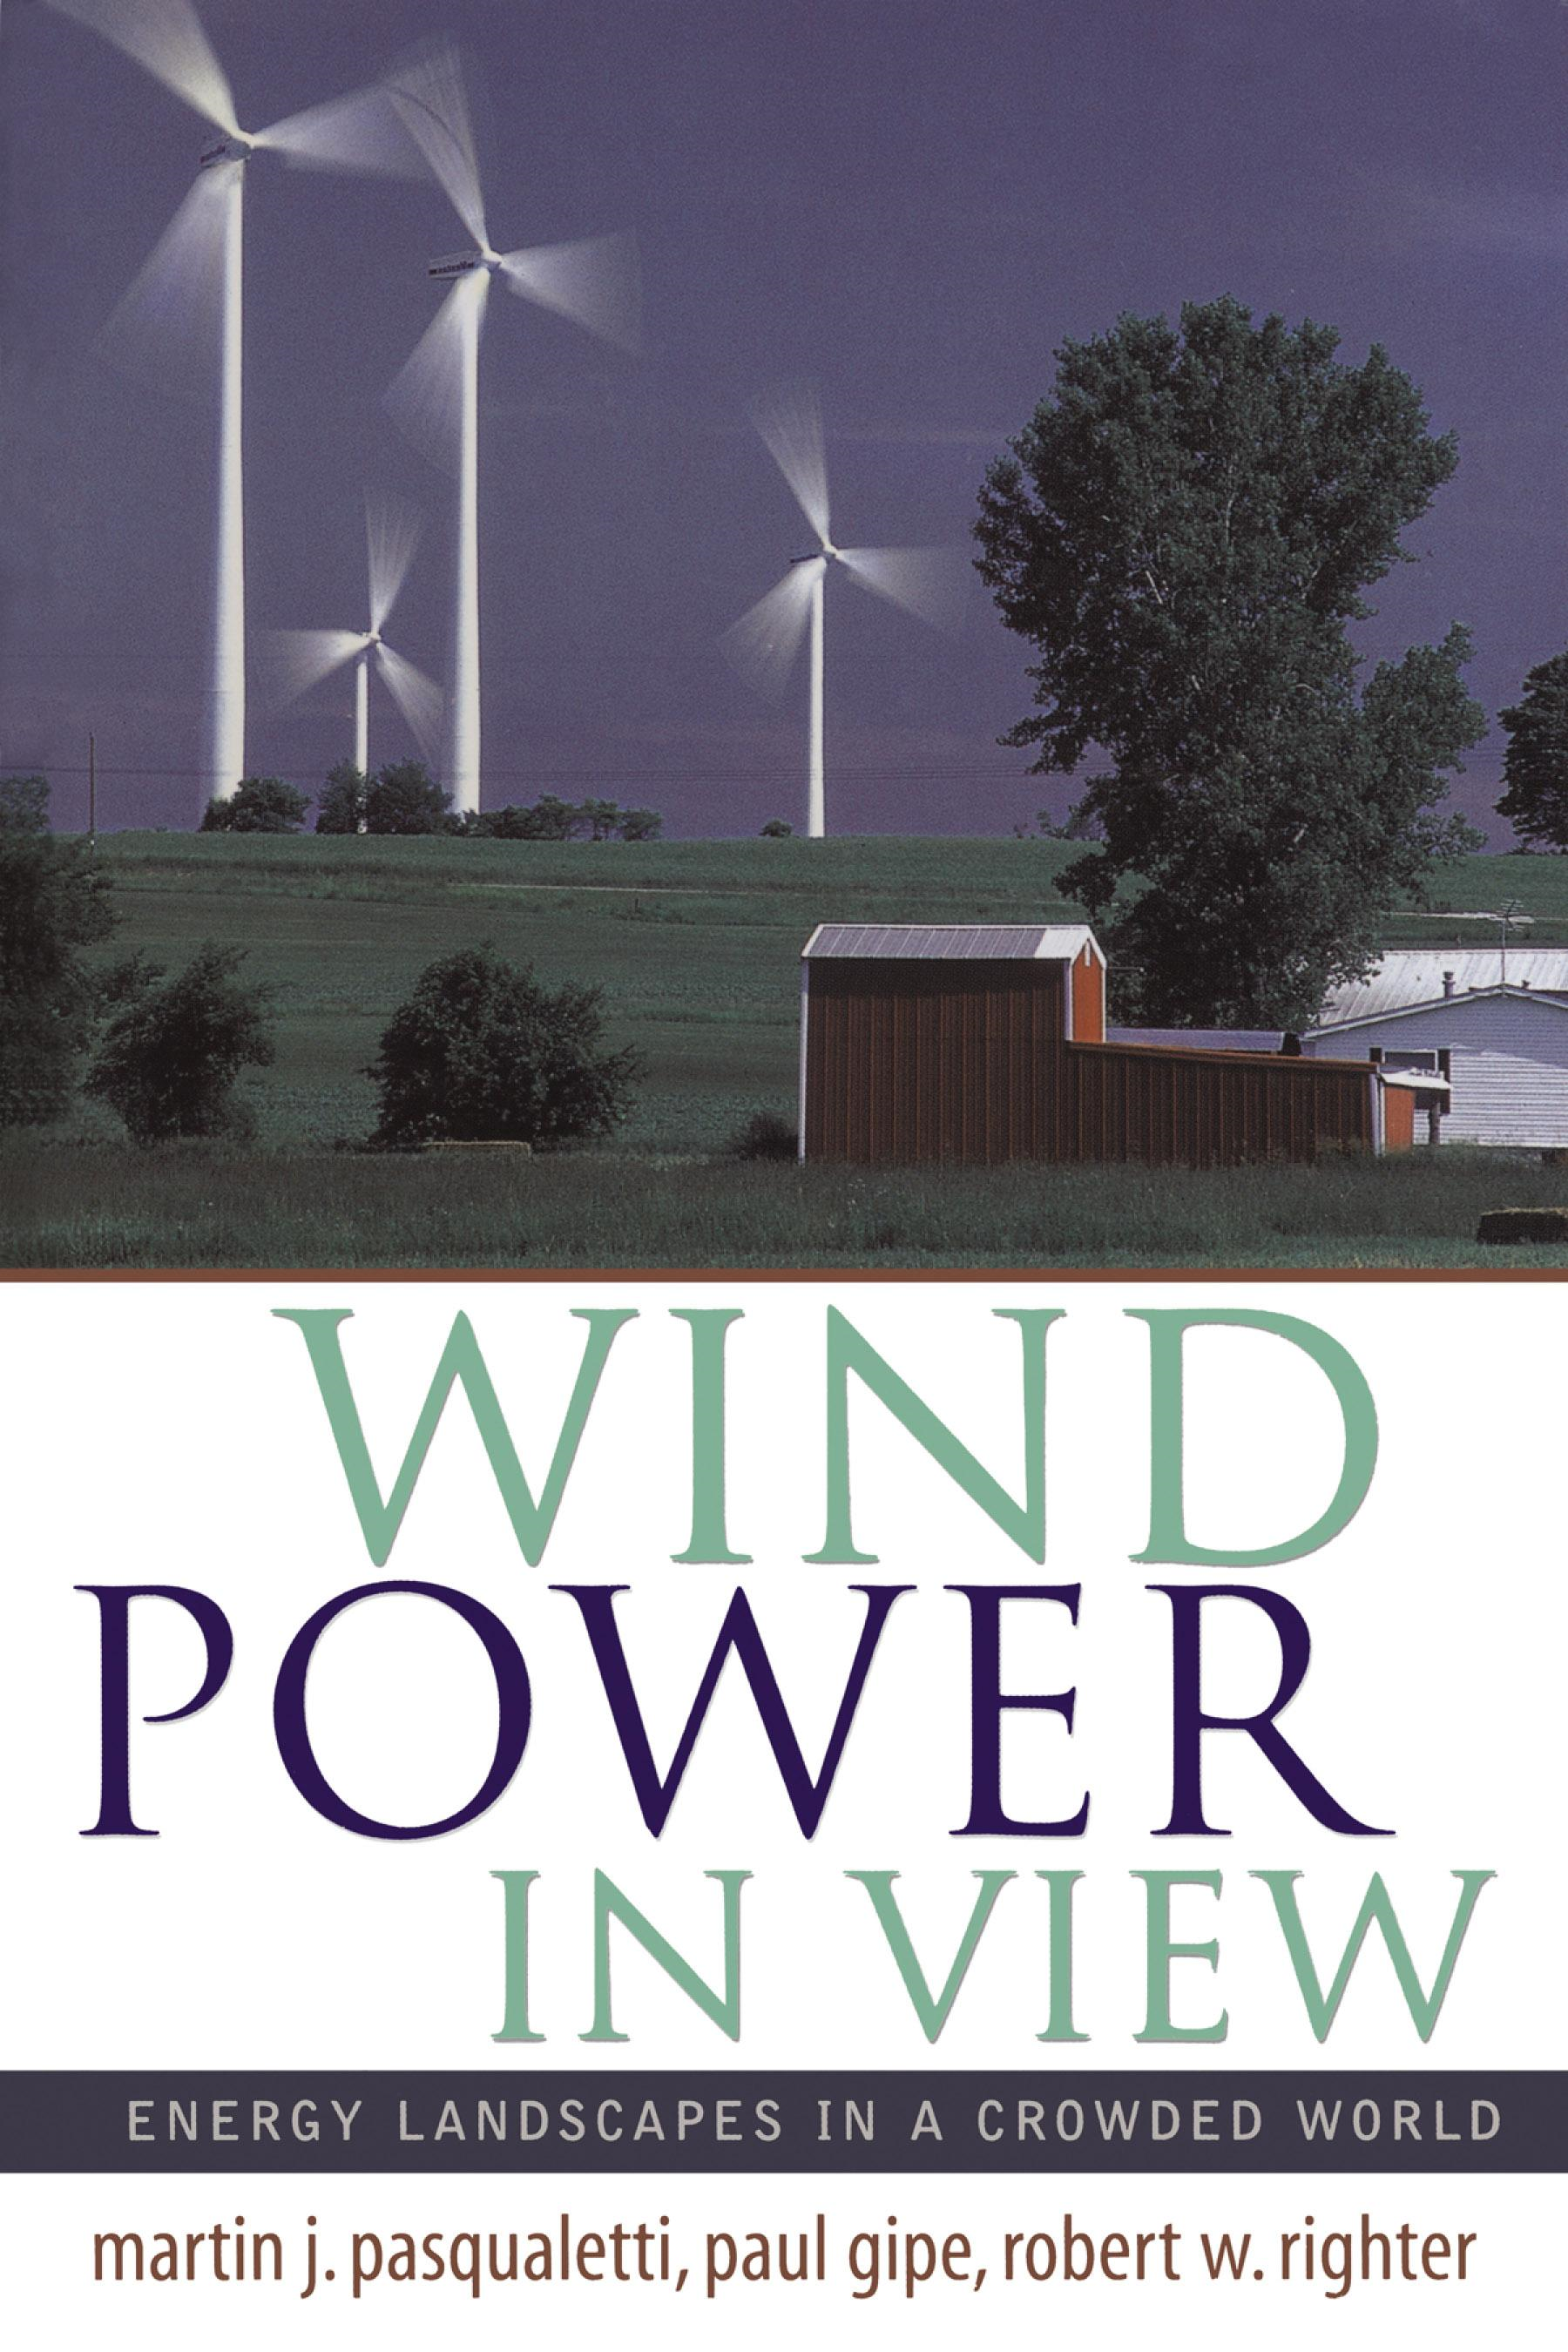 Wind Power in View: Energy Landscapes in a Crowded World